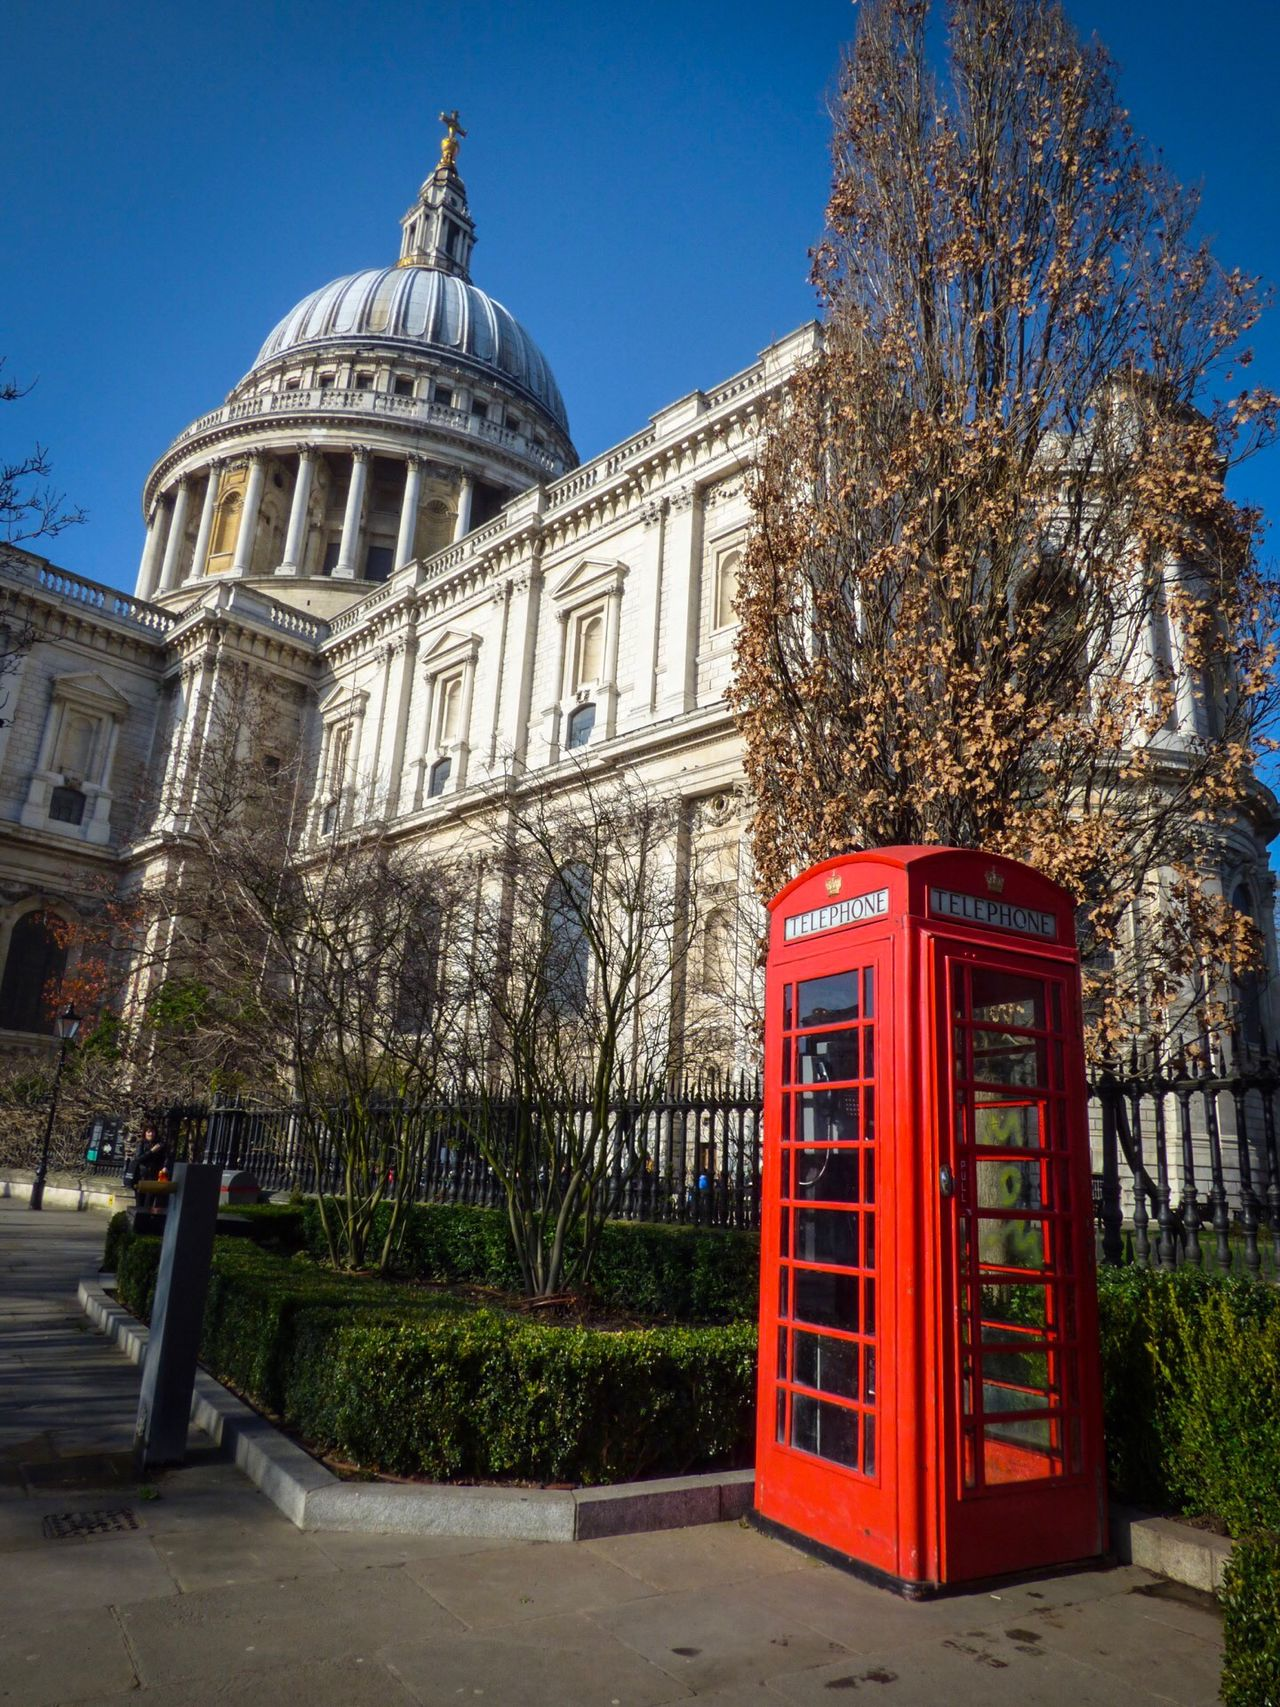 Telephone Booth Building Exterior Architecture Built Structure Travel Destinations Pay Phone Outdoors Clear Sky City History Day Tree No People Cultures Historical Building St Paul's Cathedral London Place Of Worship Out And About Spirituality City Railing Red Phone Boxes